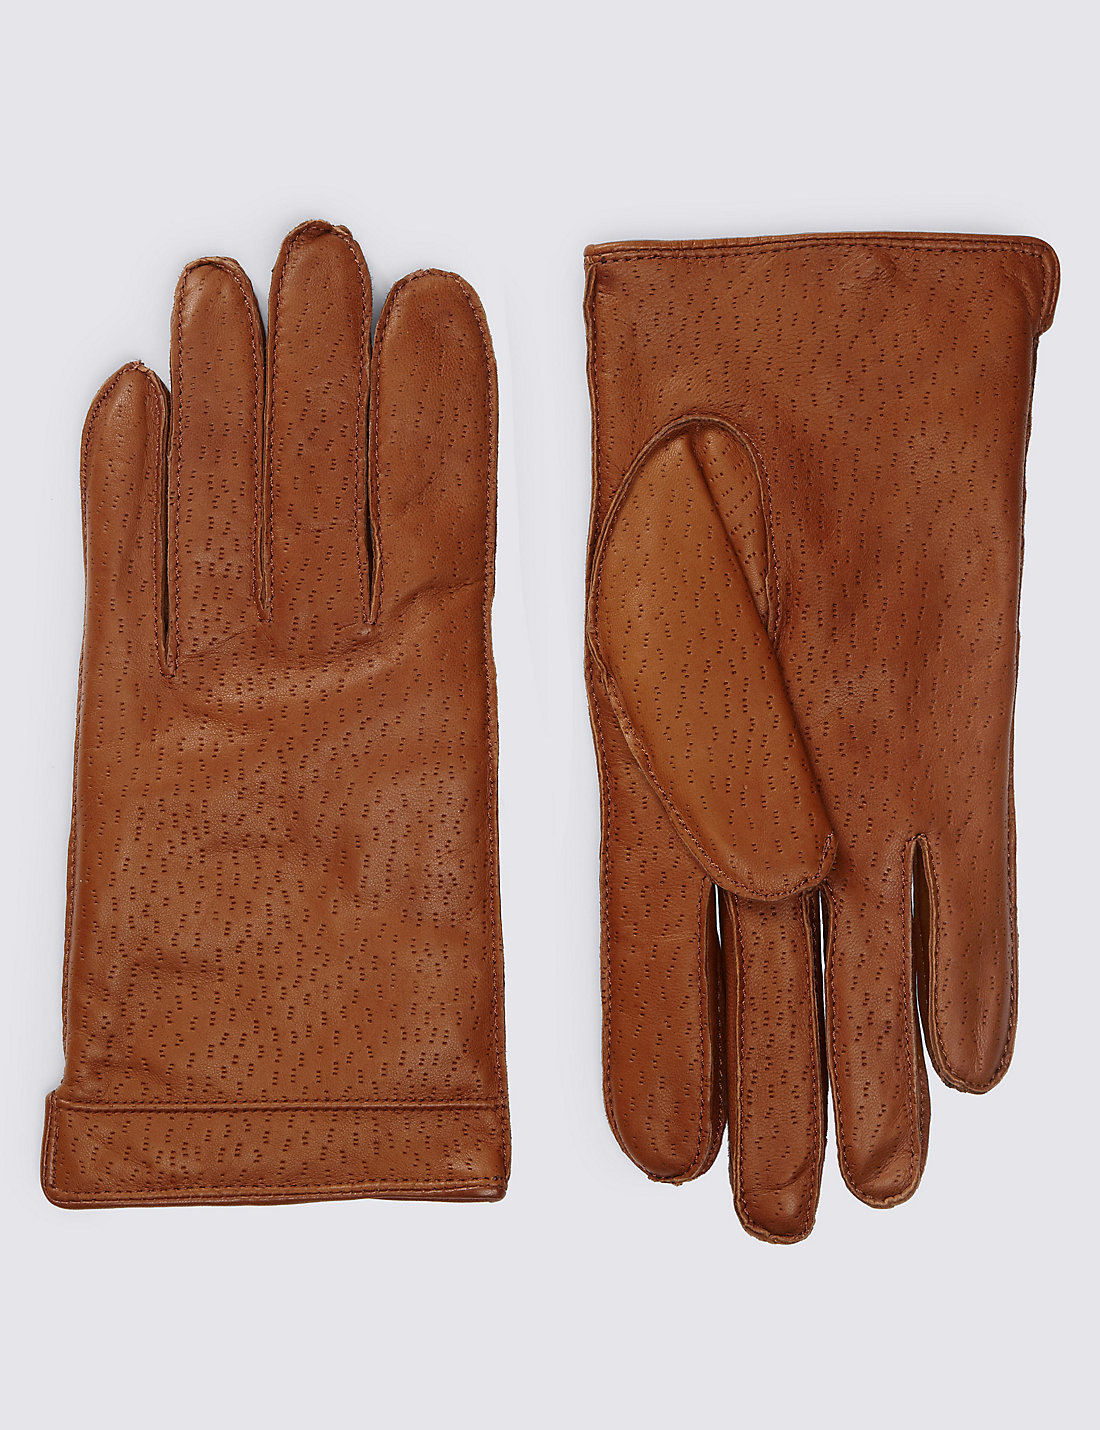 Brown vs black leather gloves - Textured Leather Gloves With Thinsulate Trade